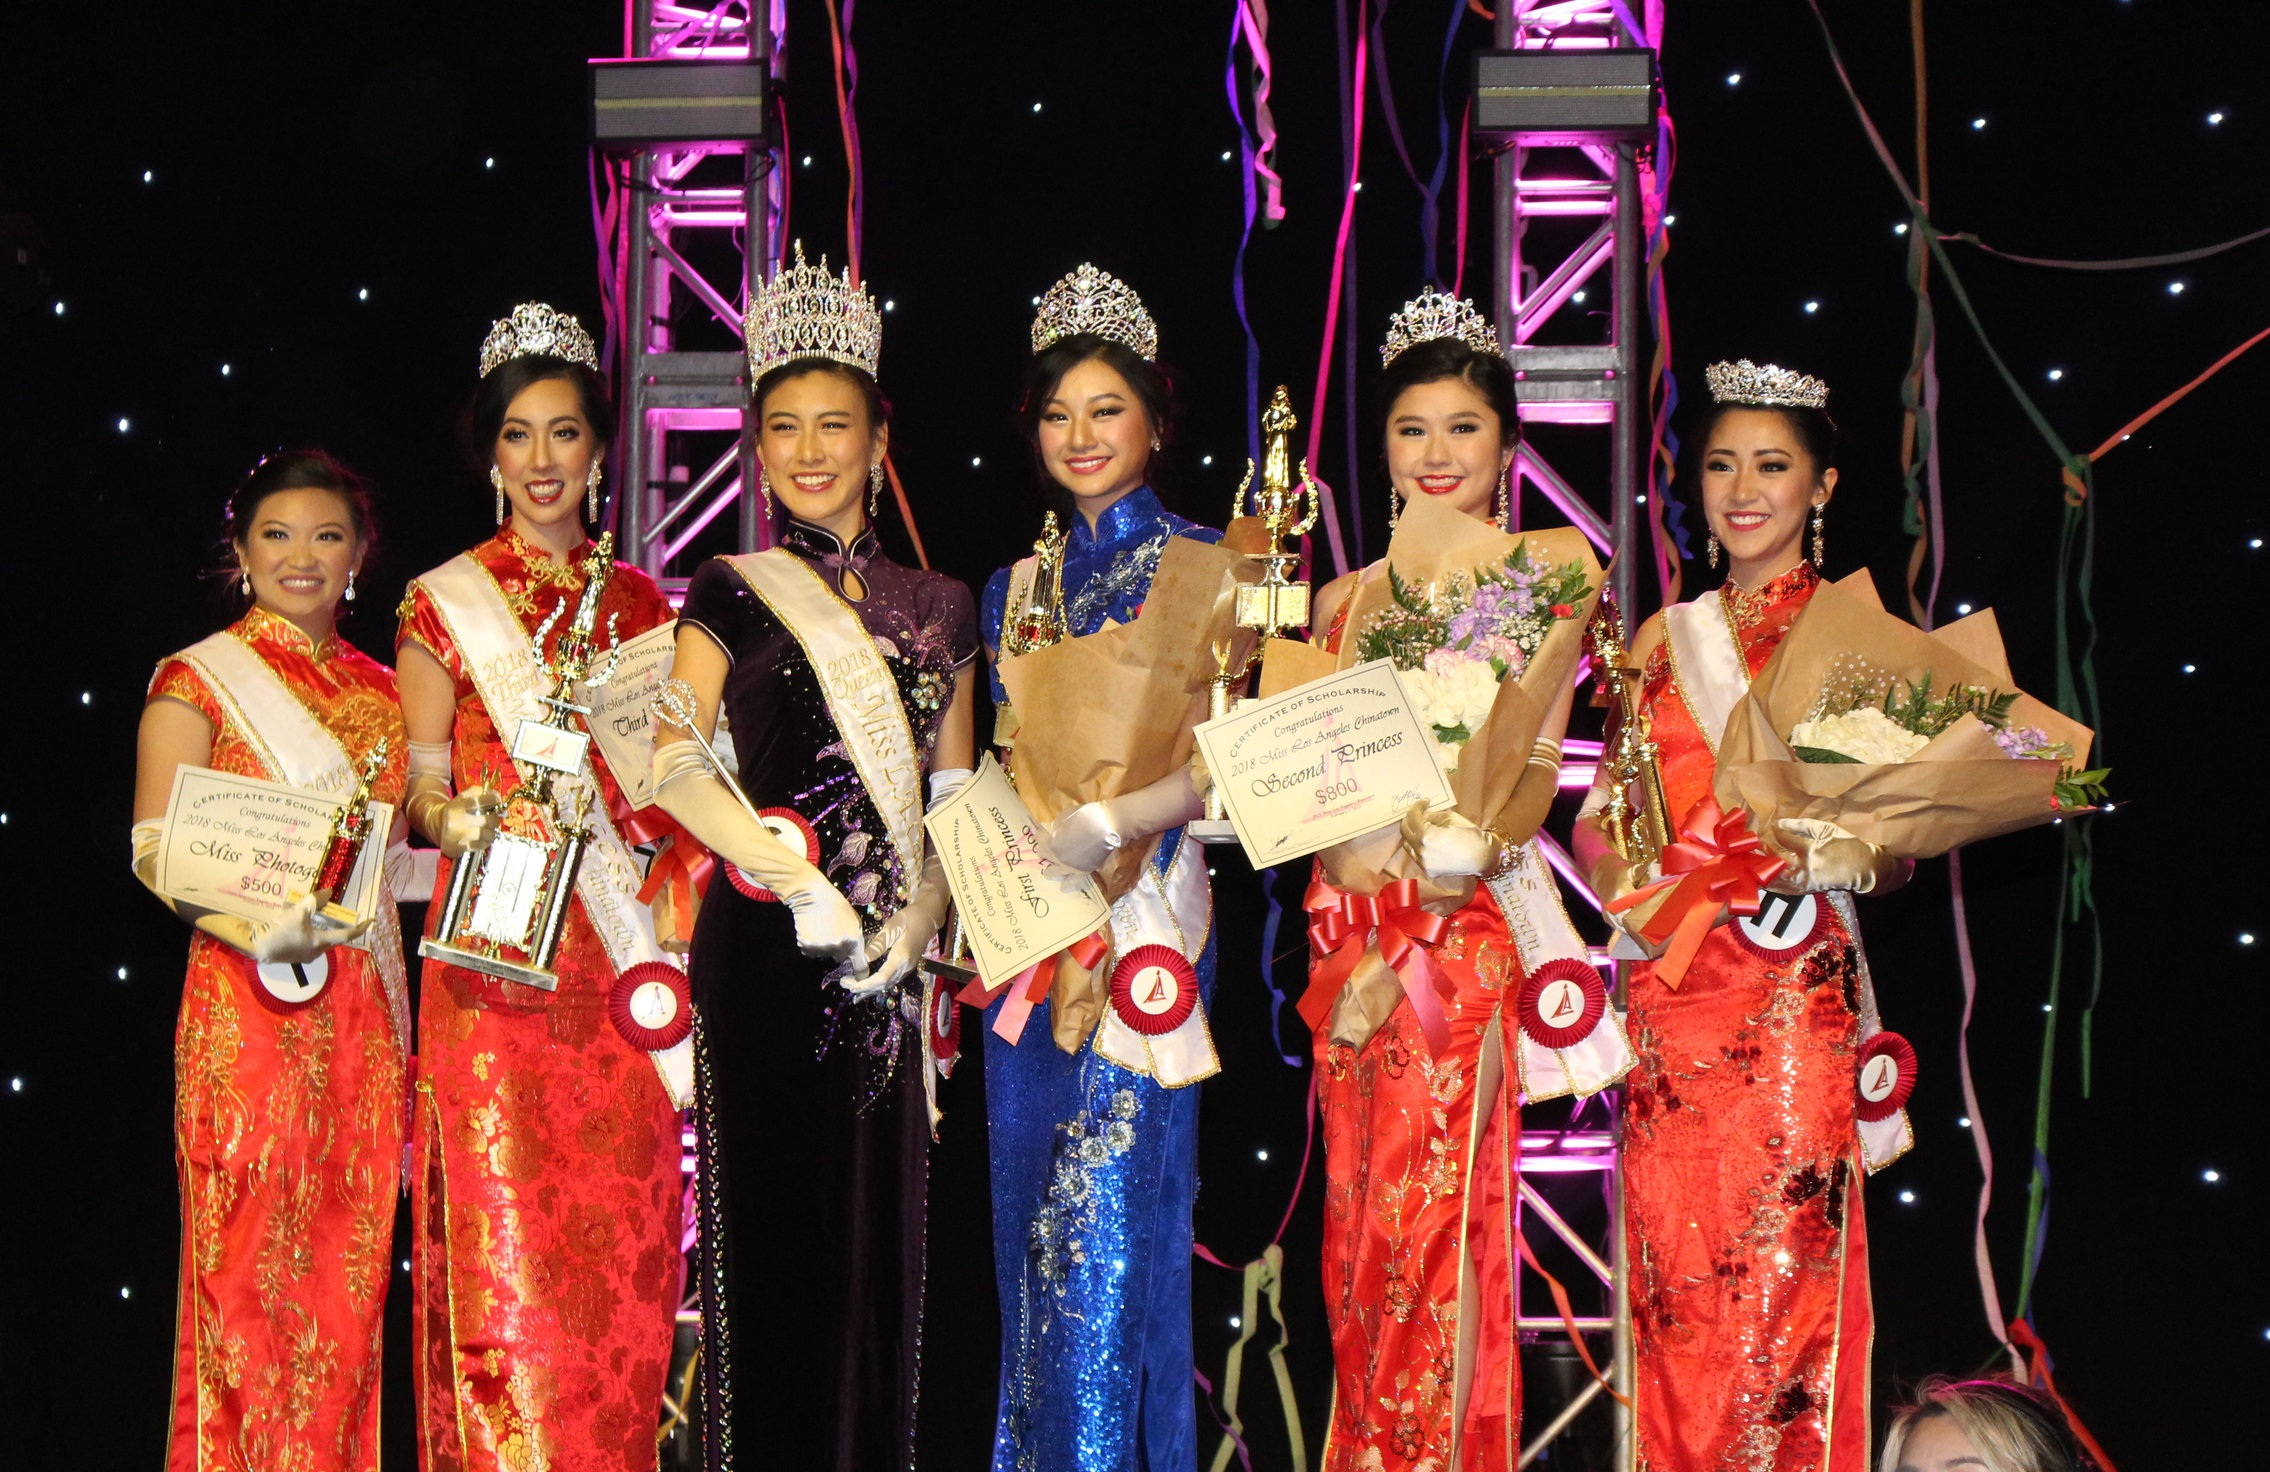 From left to right:  Miss Friendship & Miss Photogenic Sally Yu, Third Princess Jaclyn Perry, Queen Catherine Liang, First Princess Joyce Lam, Second Princess Jasmine Lam, and Fourth Princess & Miss Friendship Anna Wu